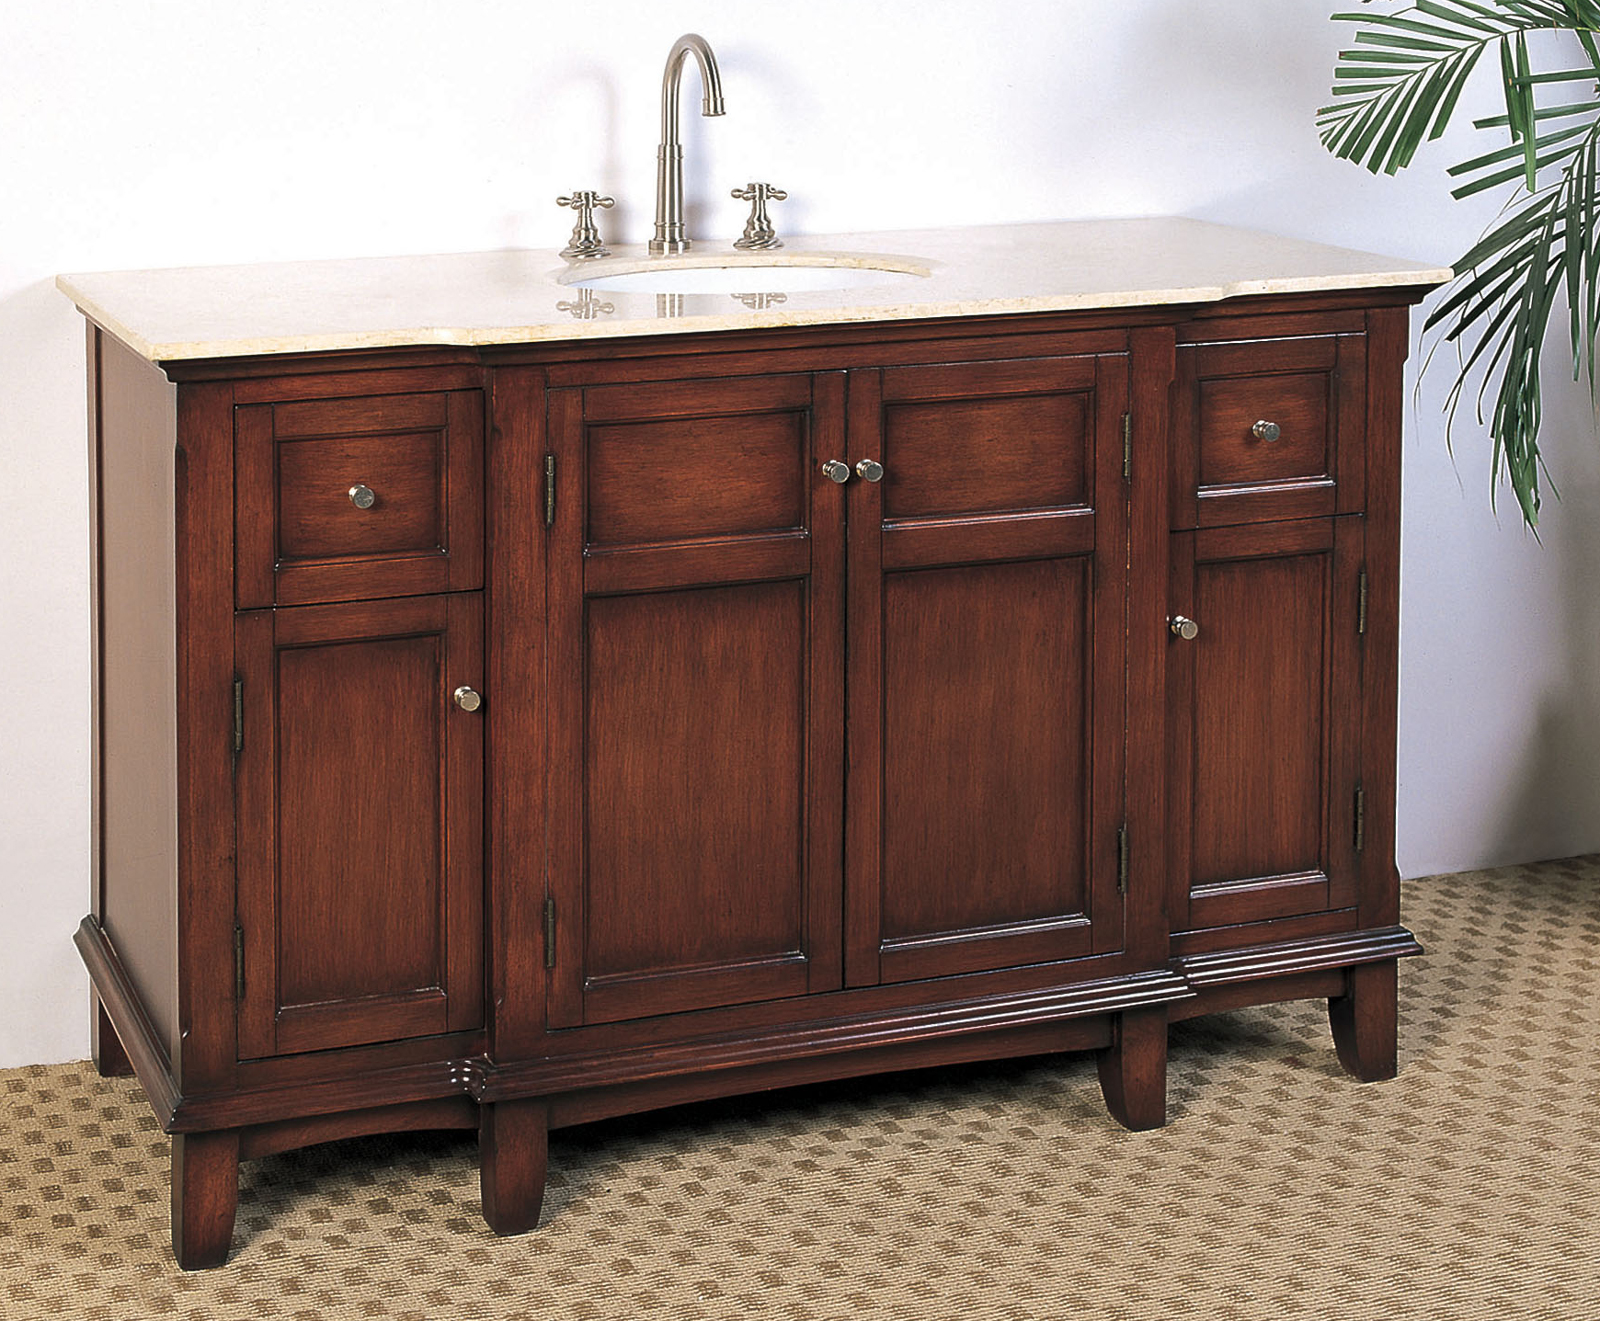 53 inch single sink bathroom vanity in bathroom vanities for Single bathroom vanity